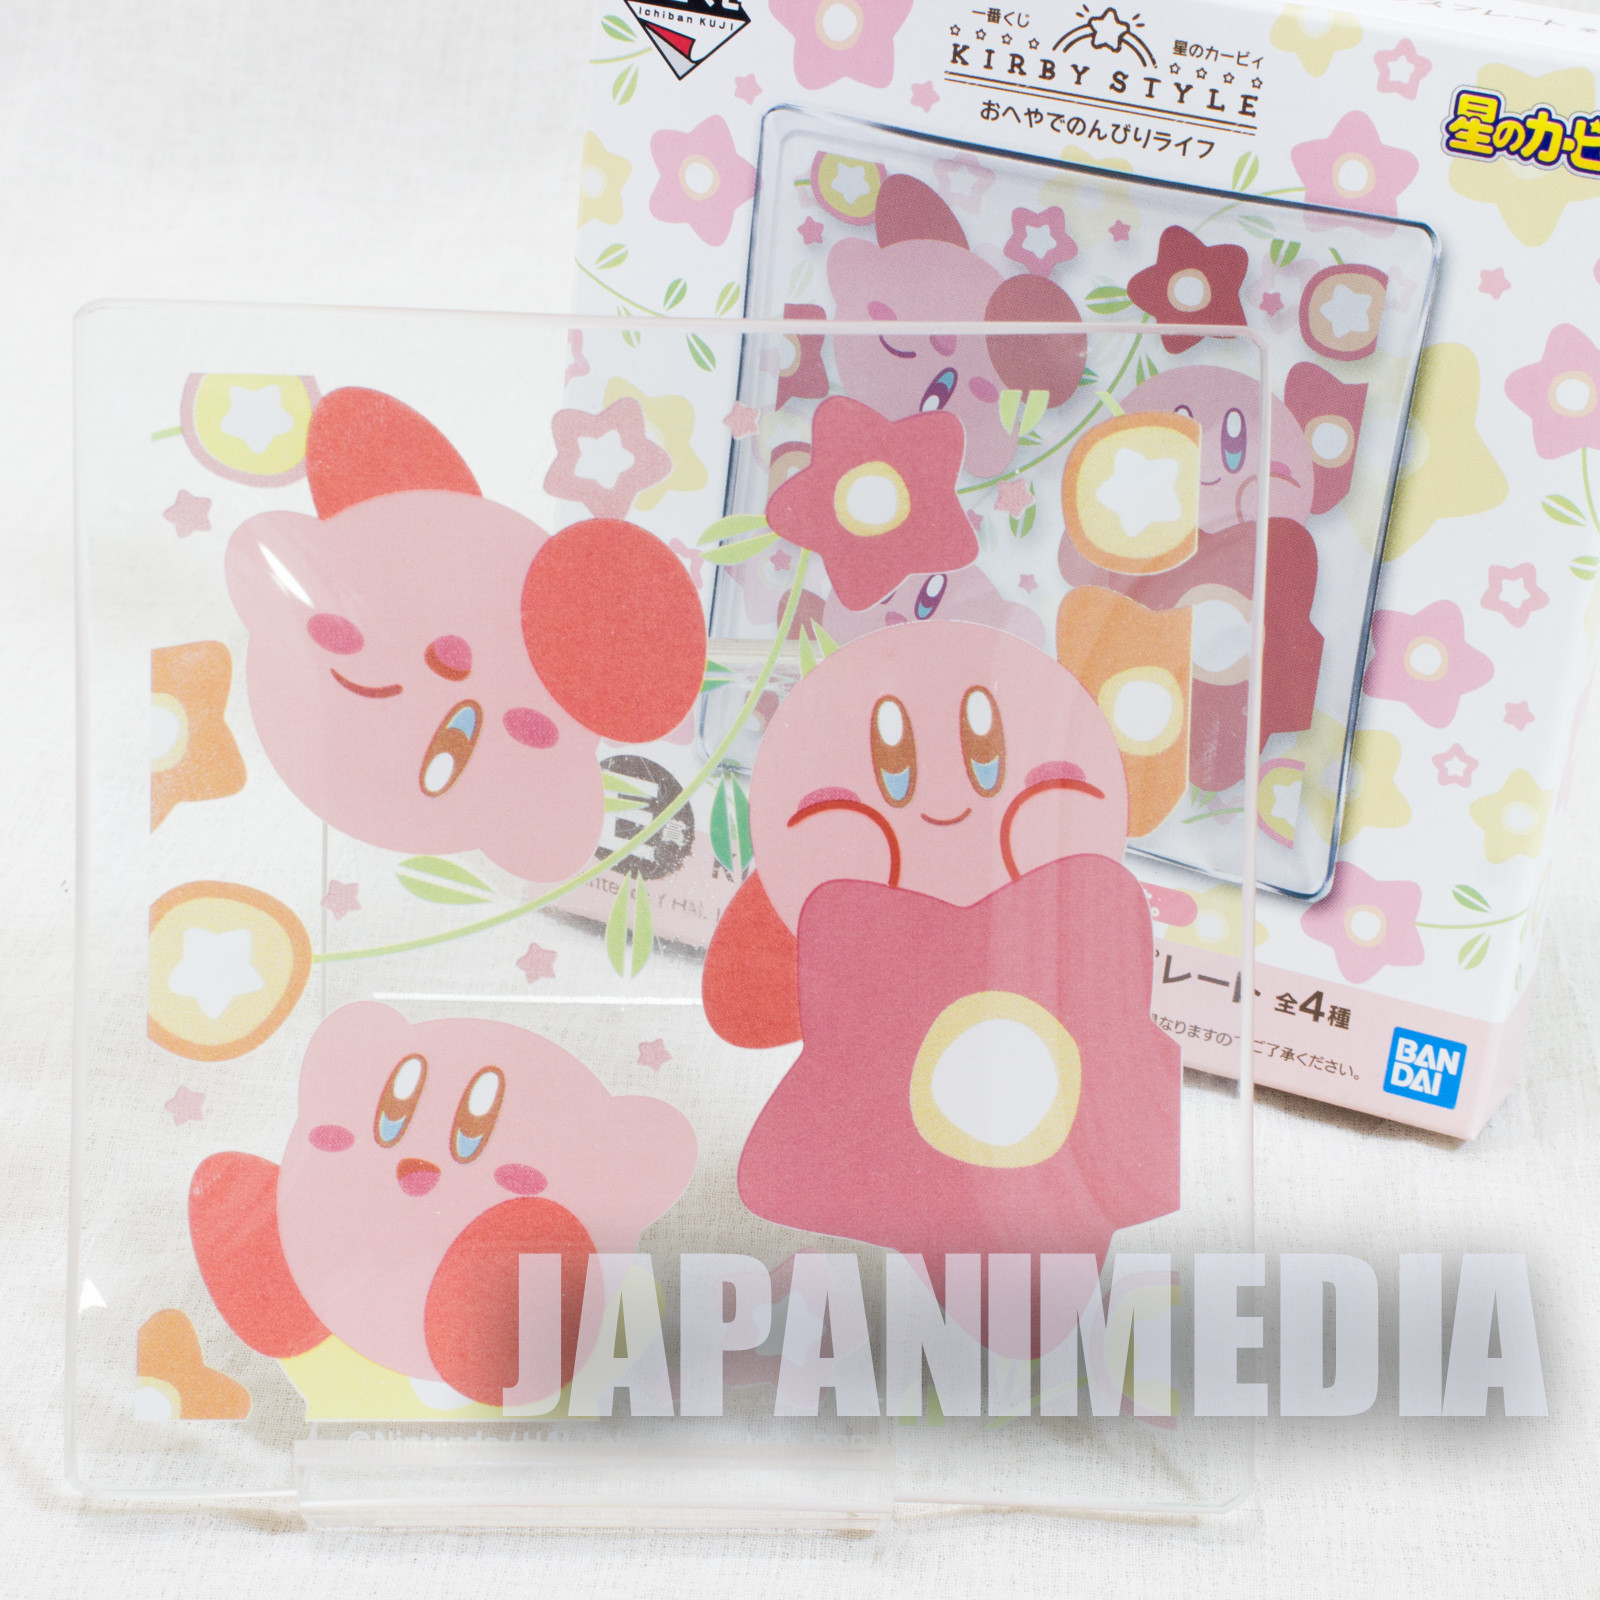 Kirby Super Star Style Glass Plate #1 BANDAI JAPAN GAME NINTNEDO